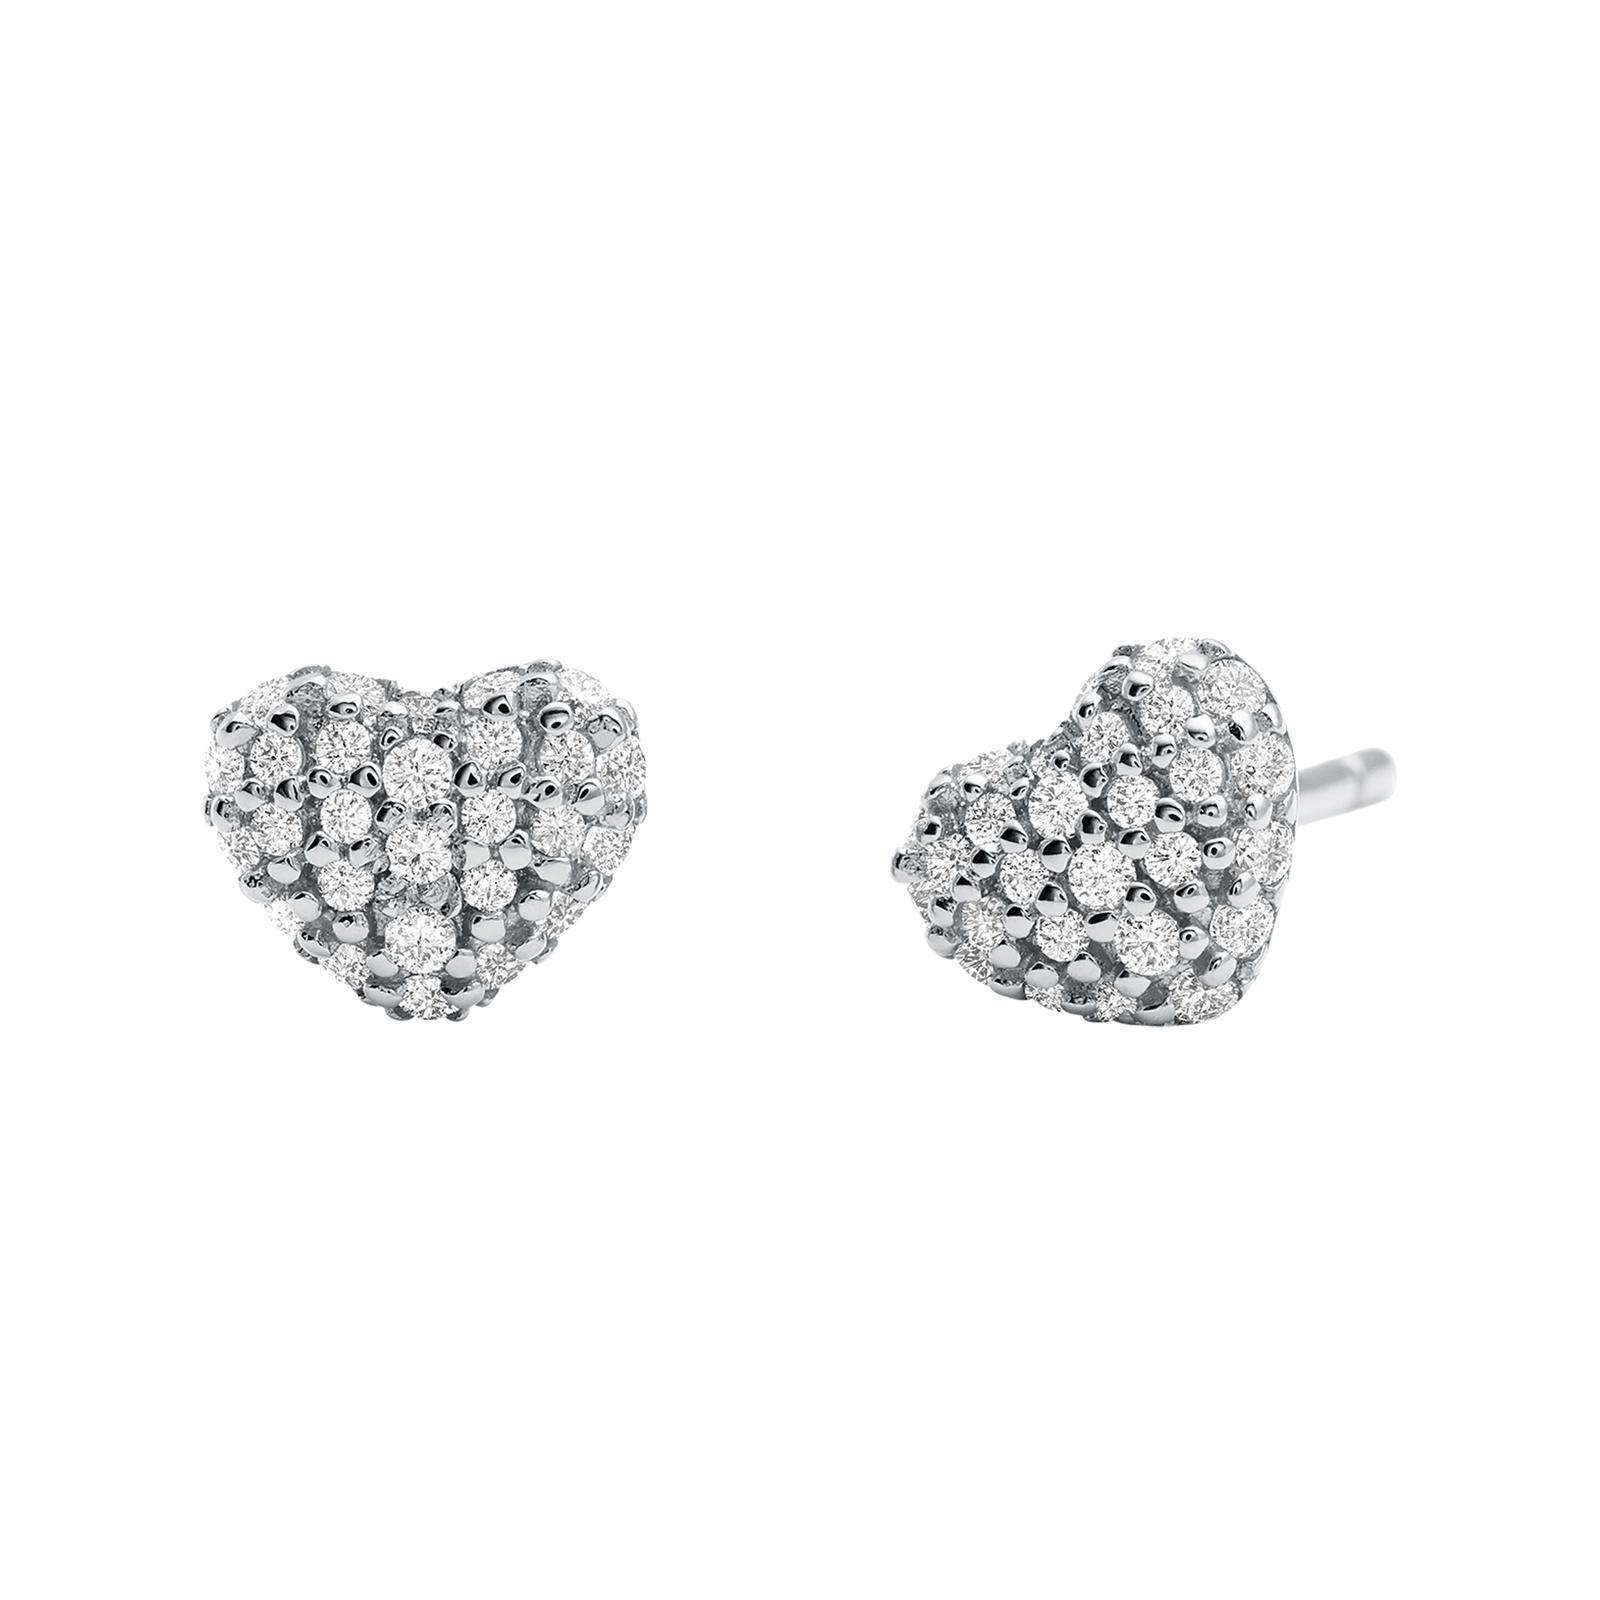 Michael Kors Pave Sterling Silver Heart Stud Earrings  998733ad1ed0